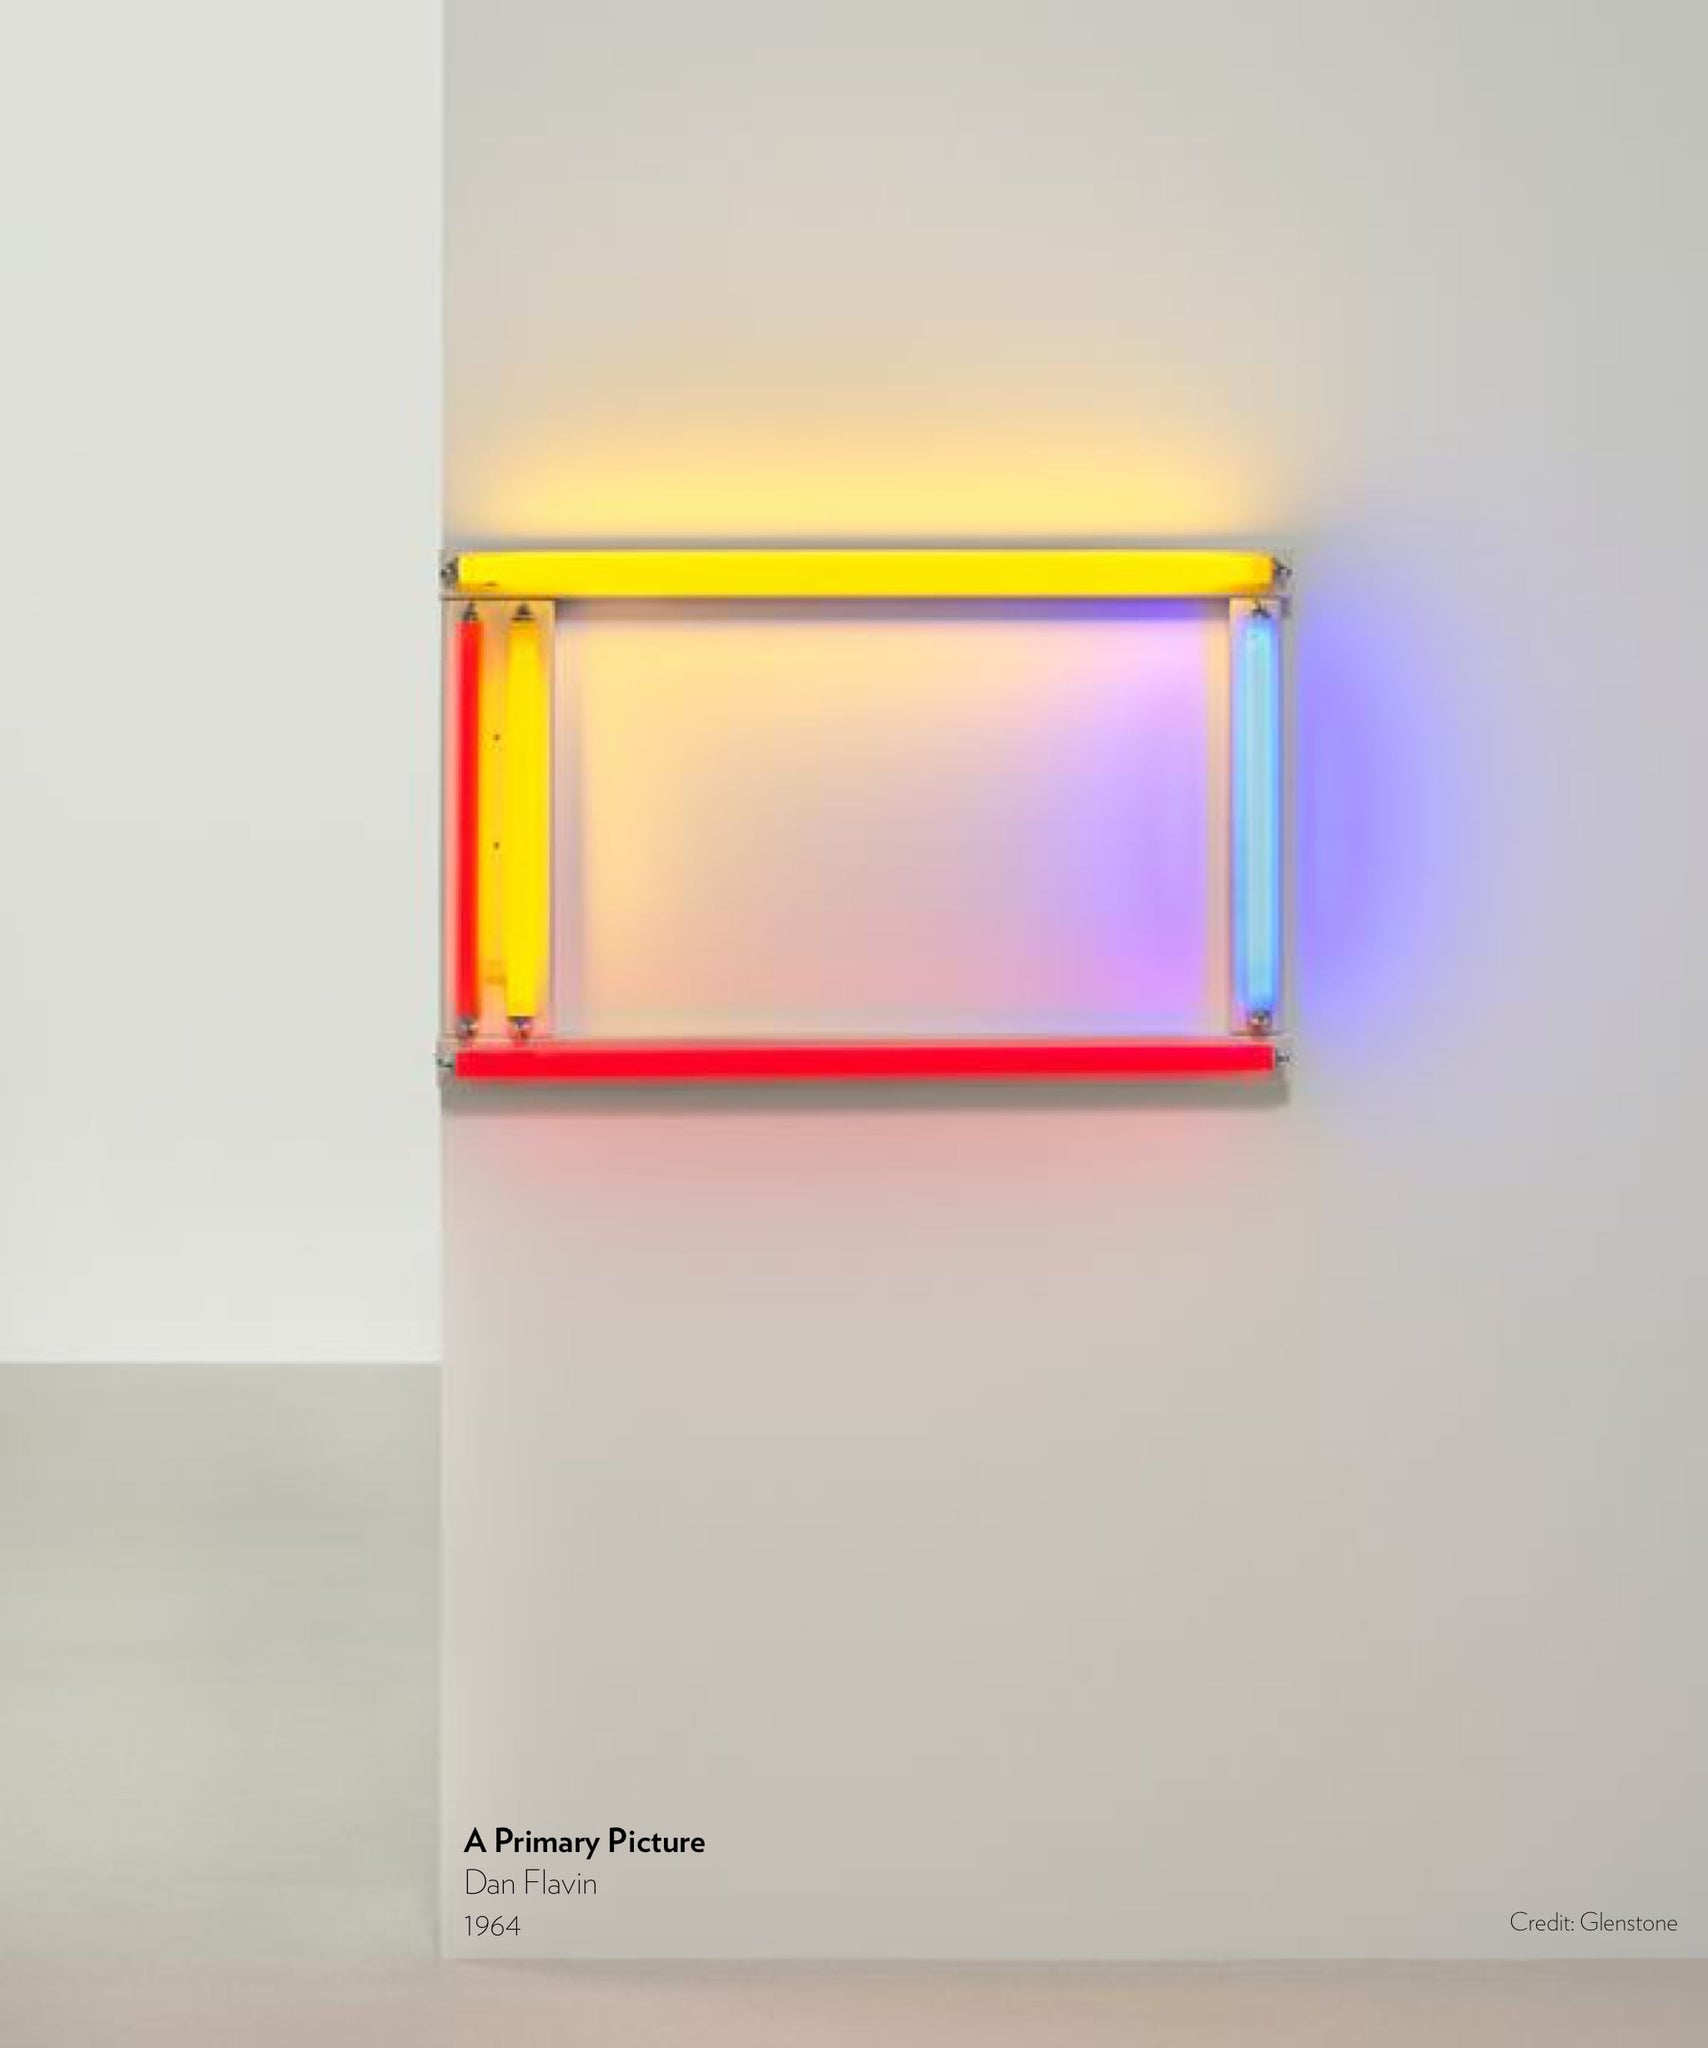 A Primary Color by Dan Flavin, 1964.